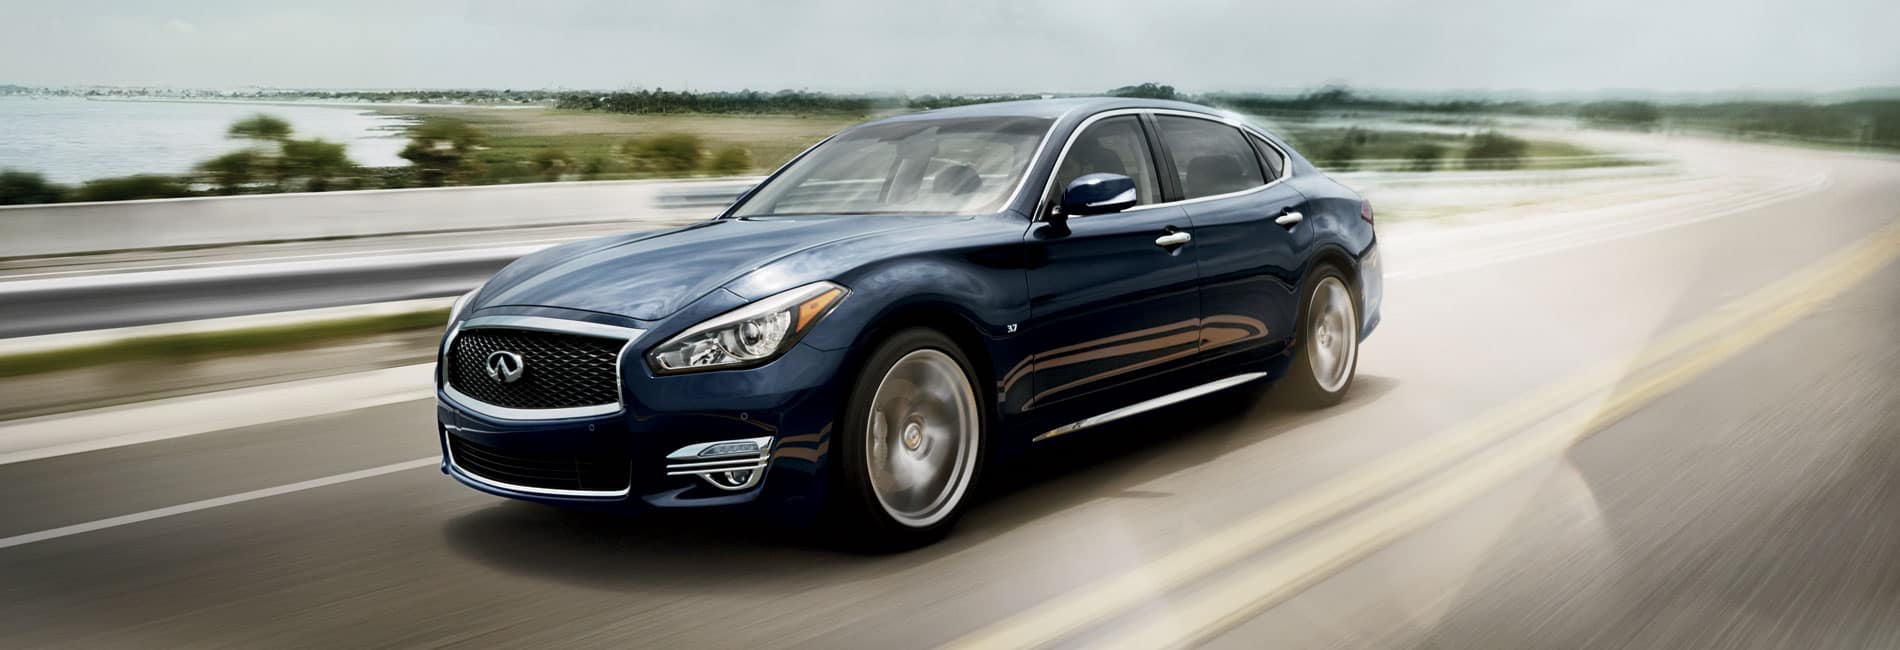 2019 INFINITI Q70L for Sale in Merrillville, IN